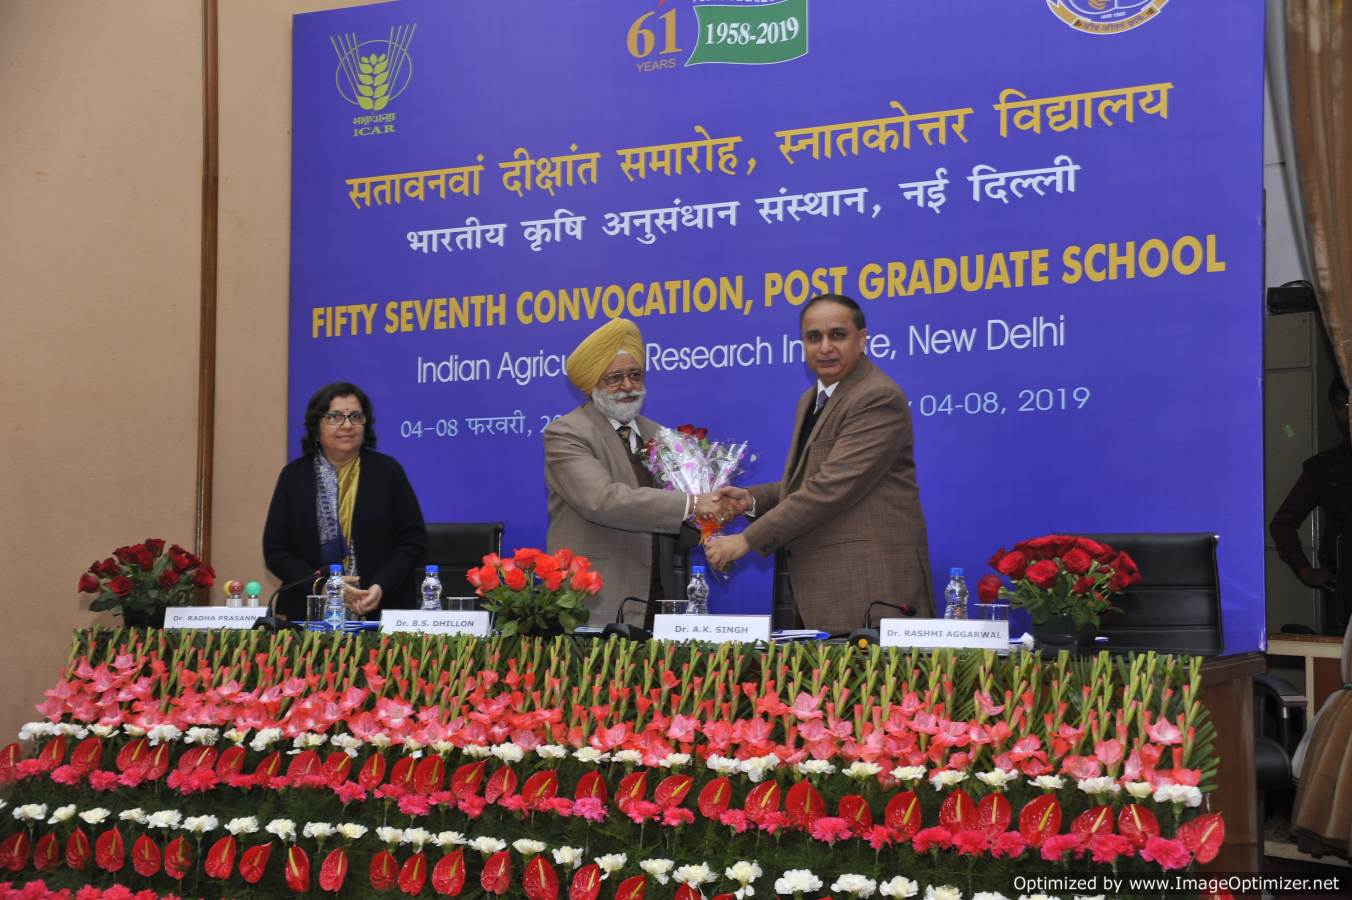 Dr. A.K. Singh , DDG (Ext) & Director IARI welcoming Dr. B.S. Dhillon, Vice chancellor, PAU, Ludhiana during the Gold Medal Presentations at 57th Convocation